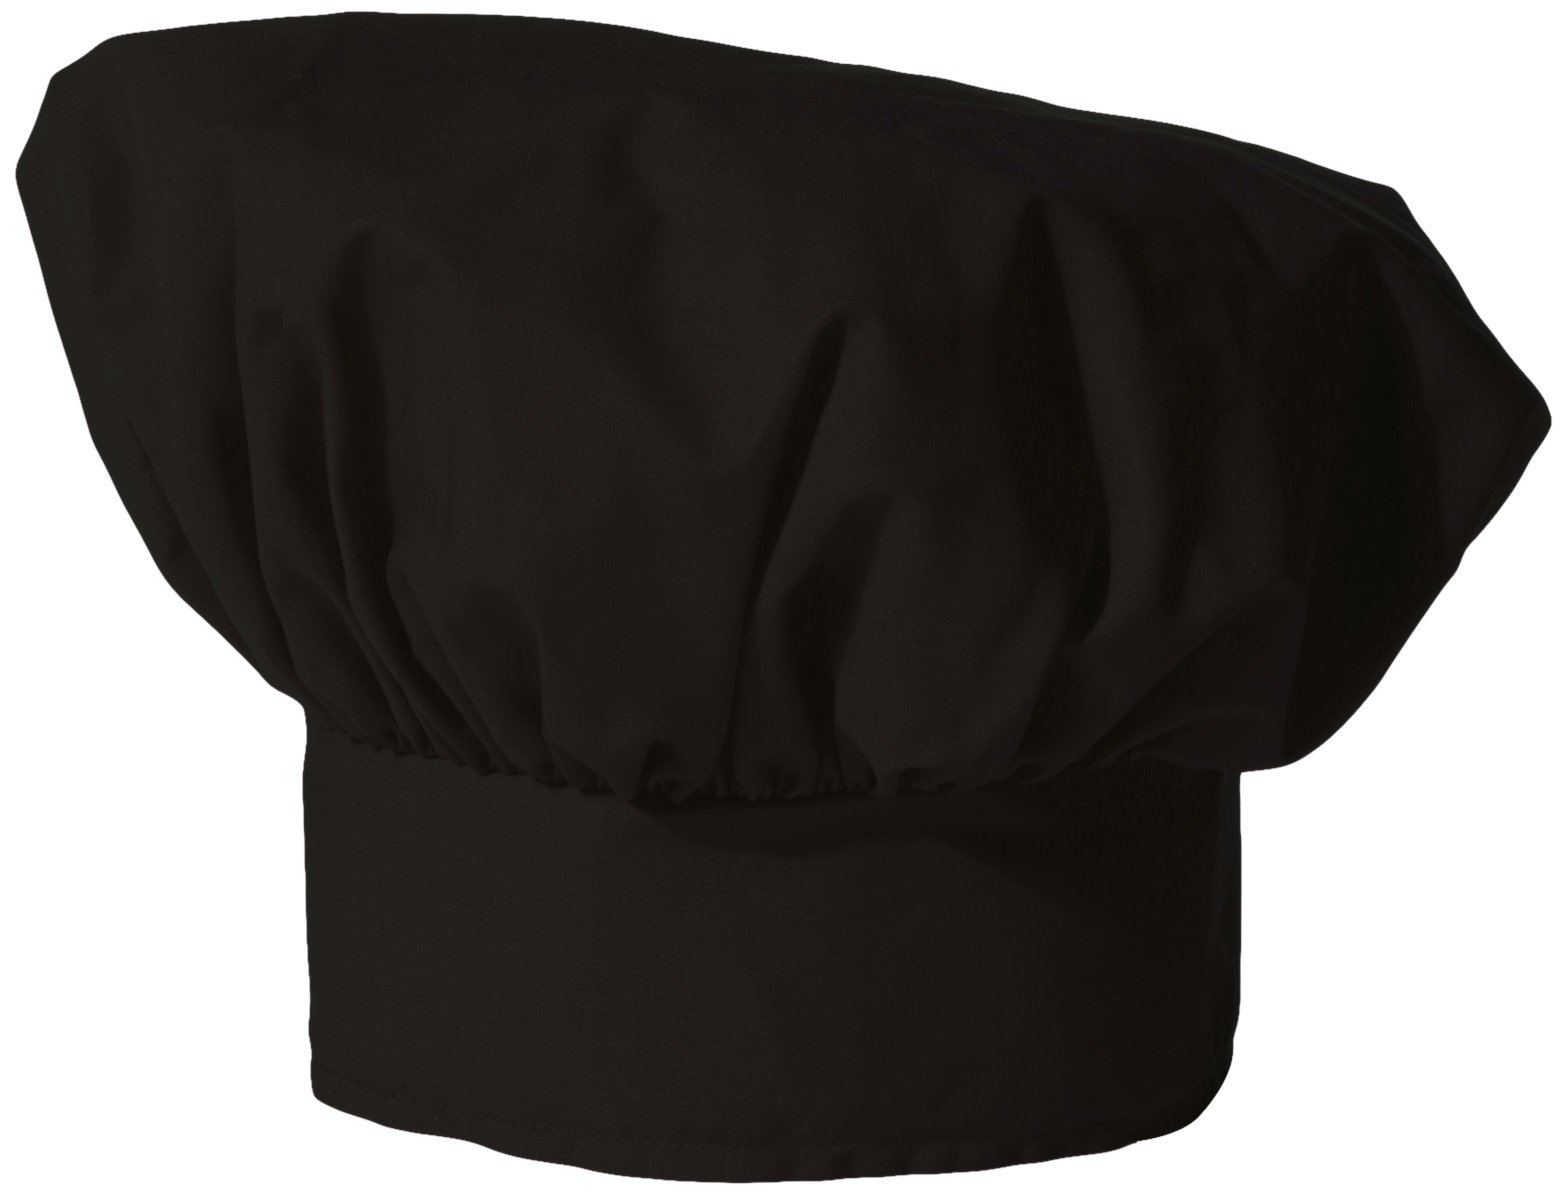 Uncommon Threads Unisex Poplin Chef Hat, Black, One Size by Uncommon Threads